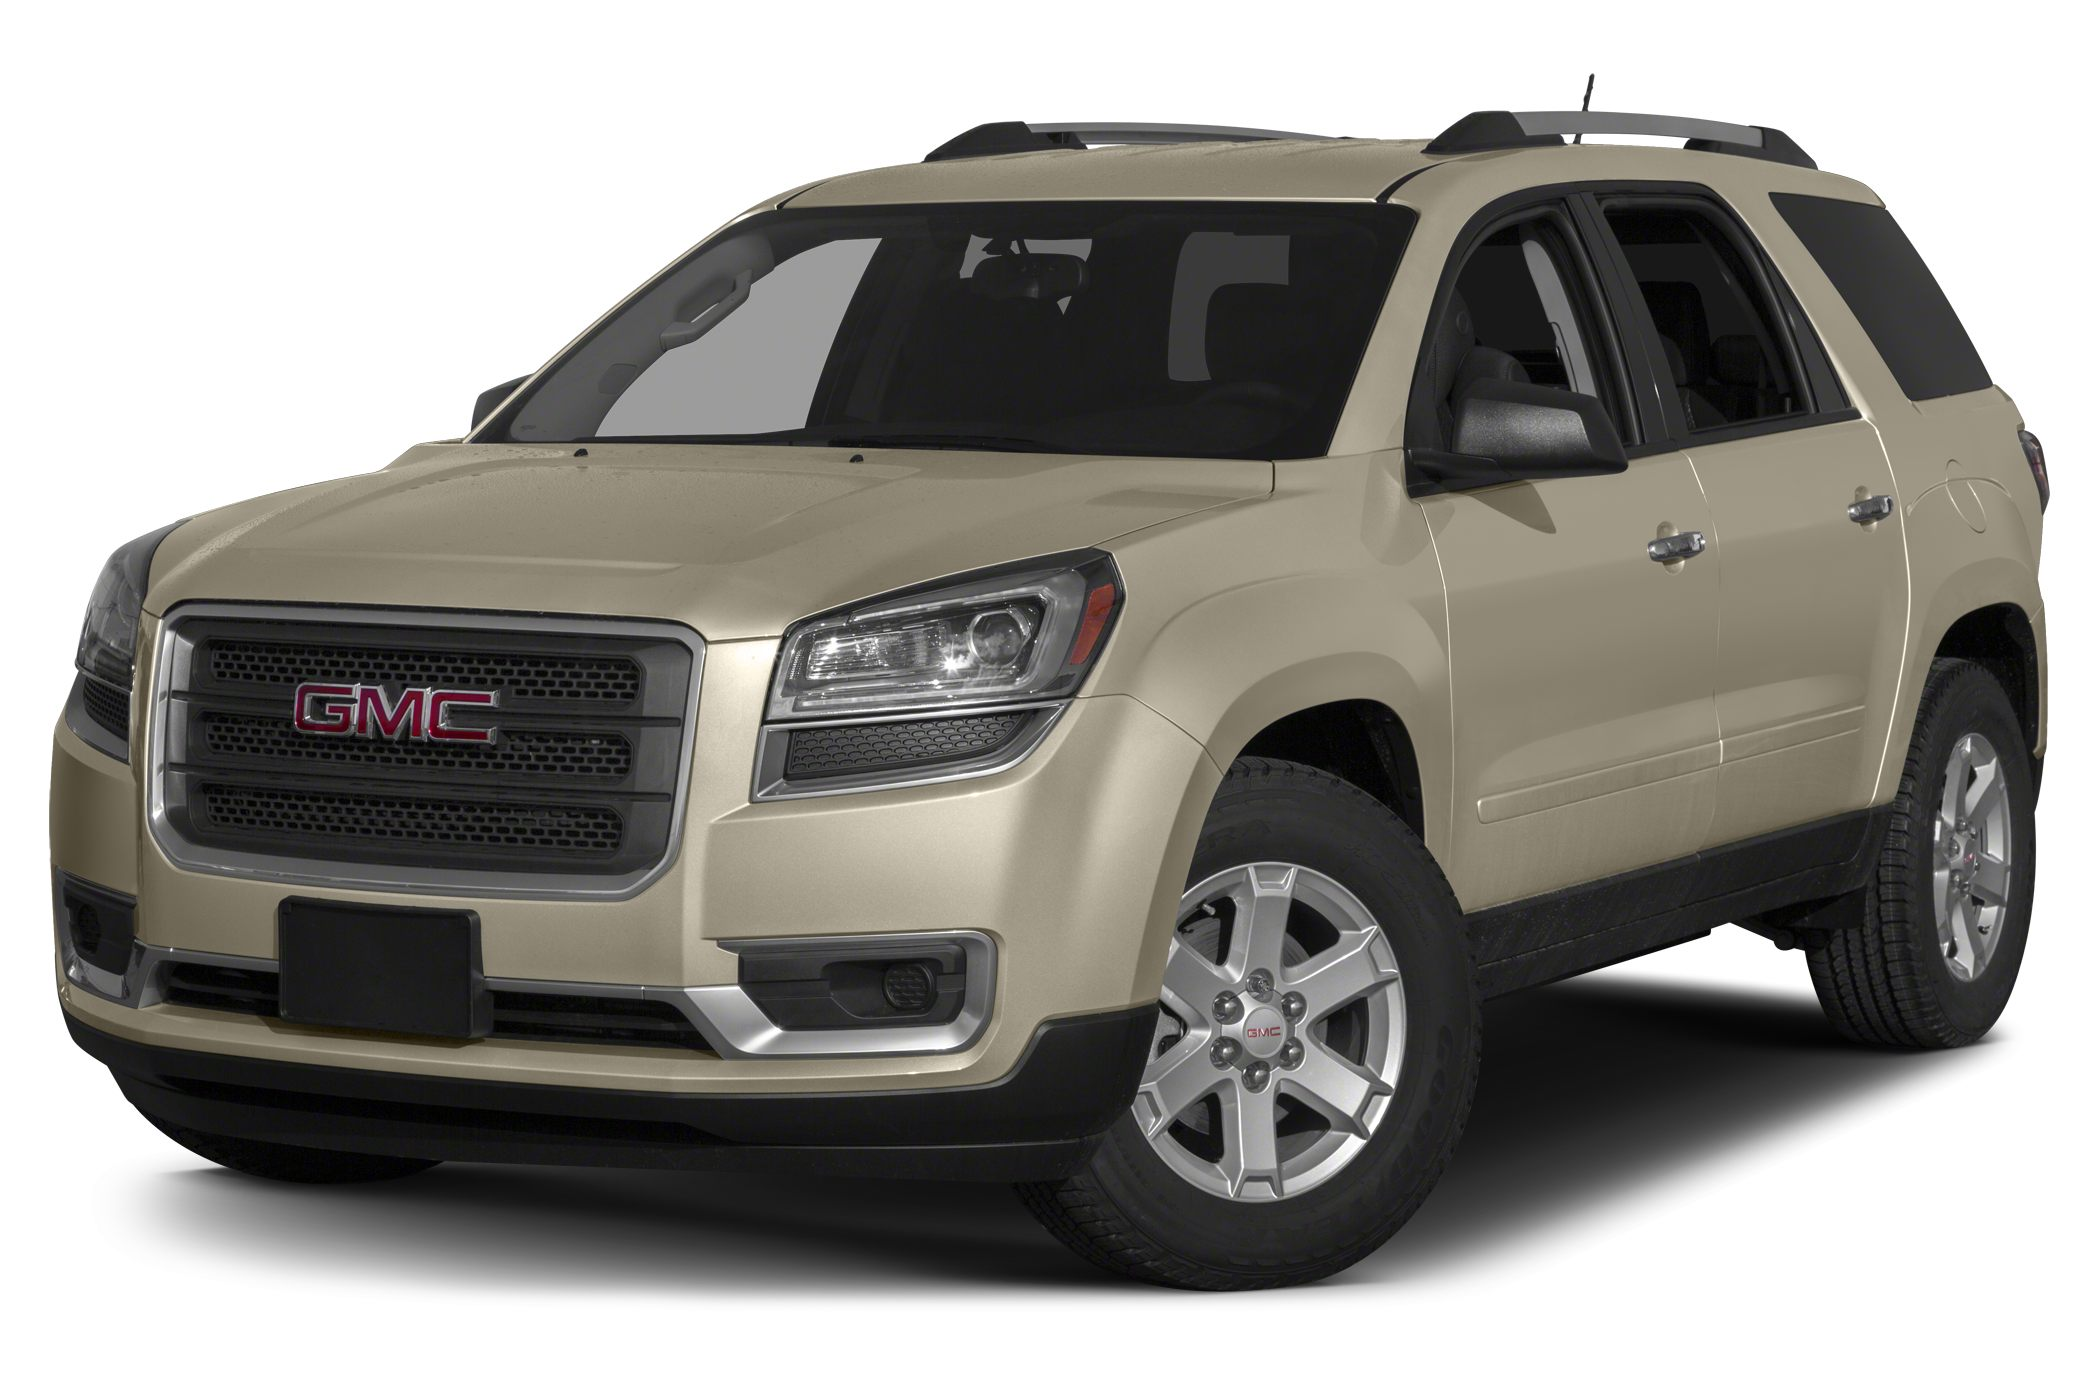 2015 GMC Acadia SLE-2 SUV for sale in Abbeville for $38,550 with 3 miles